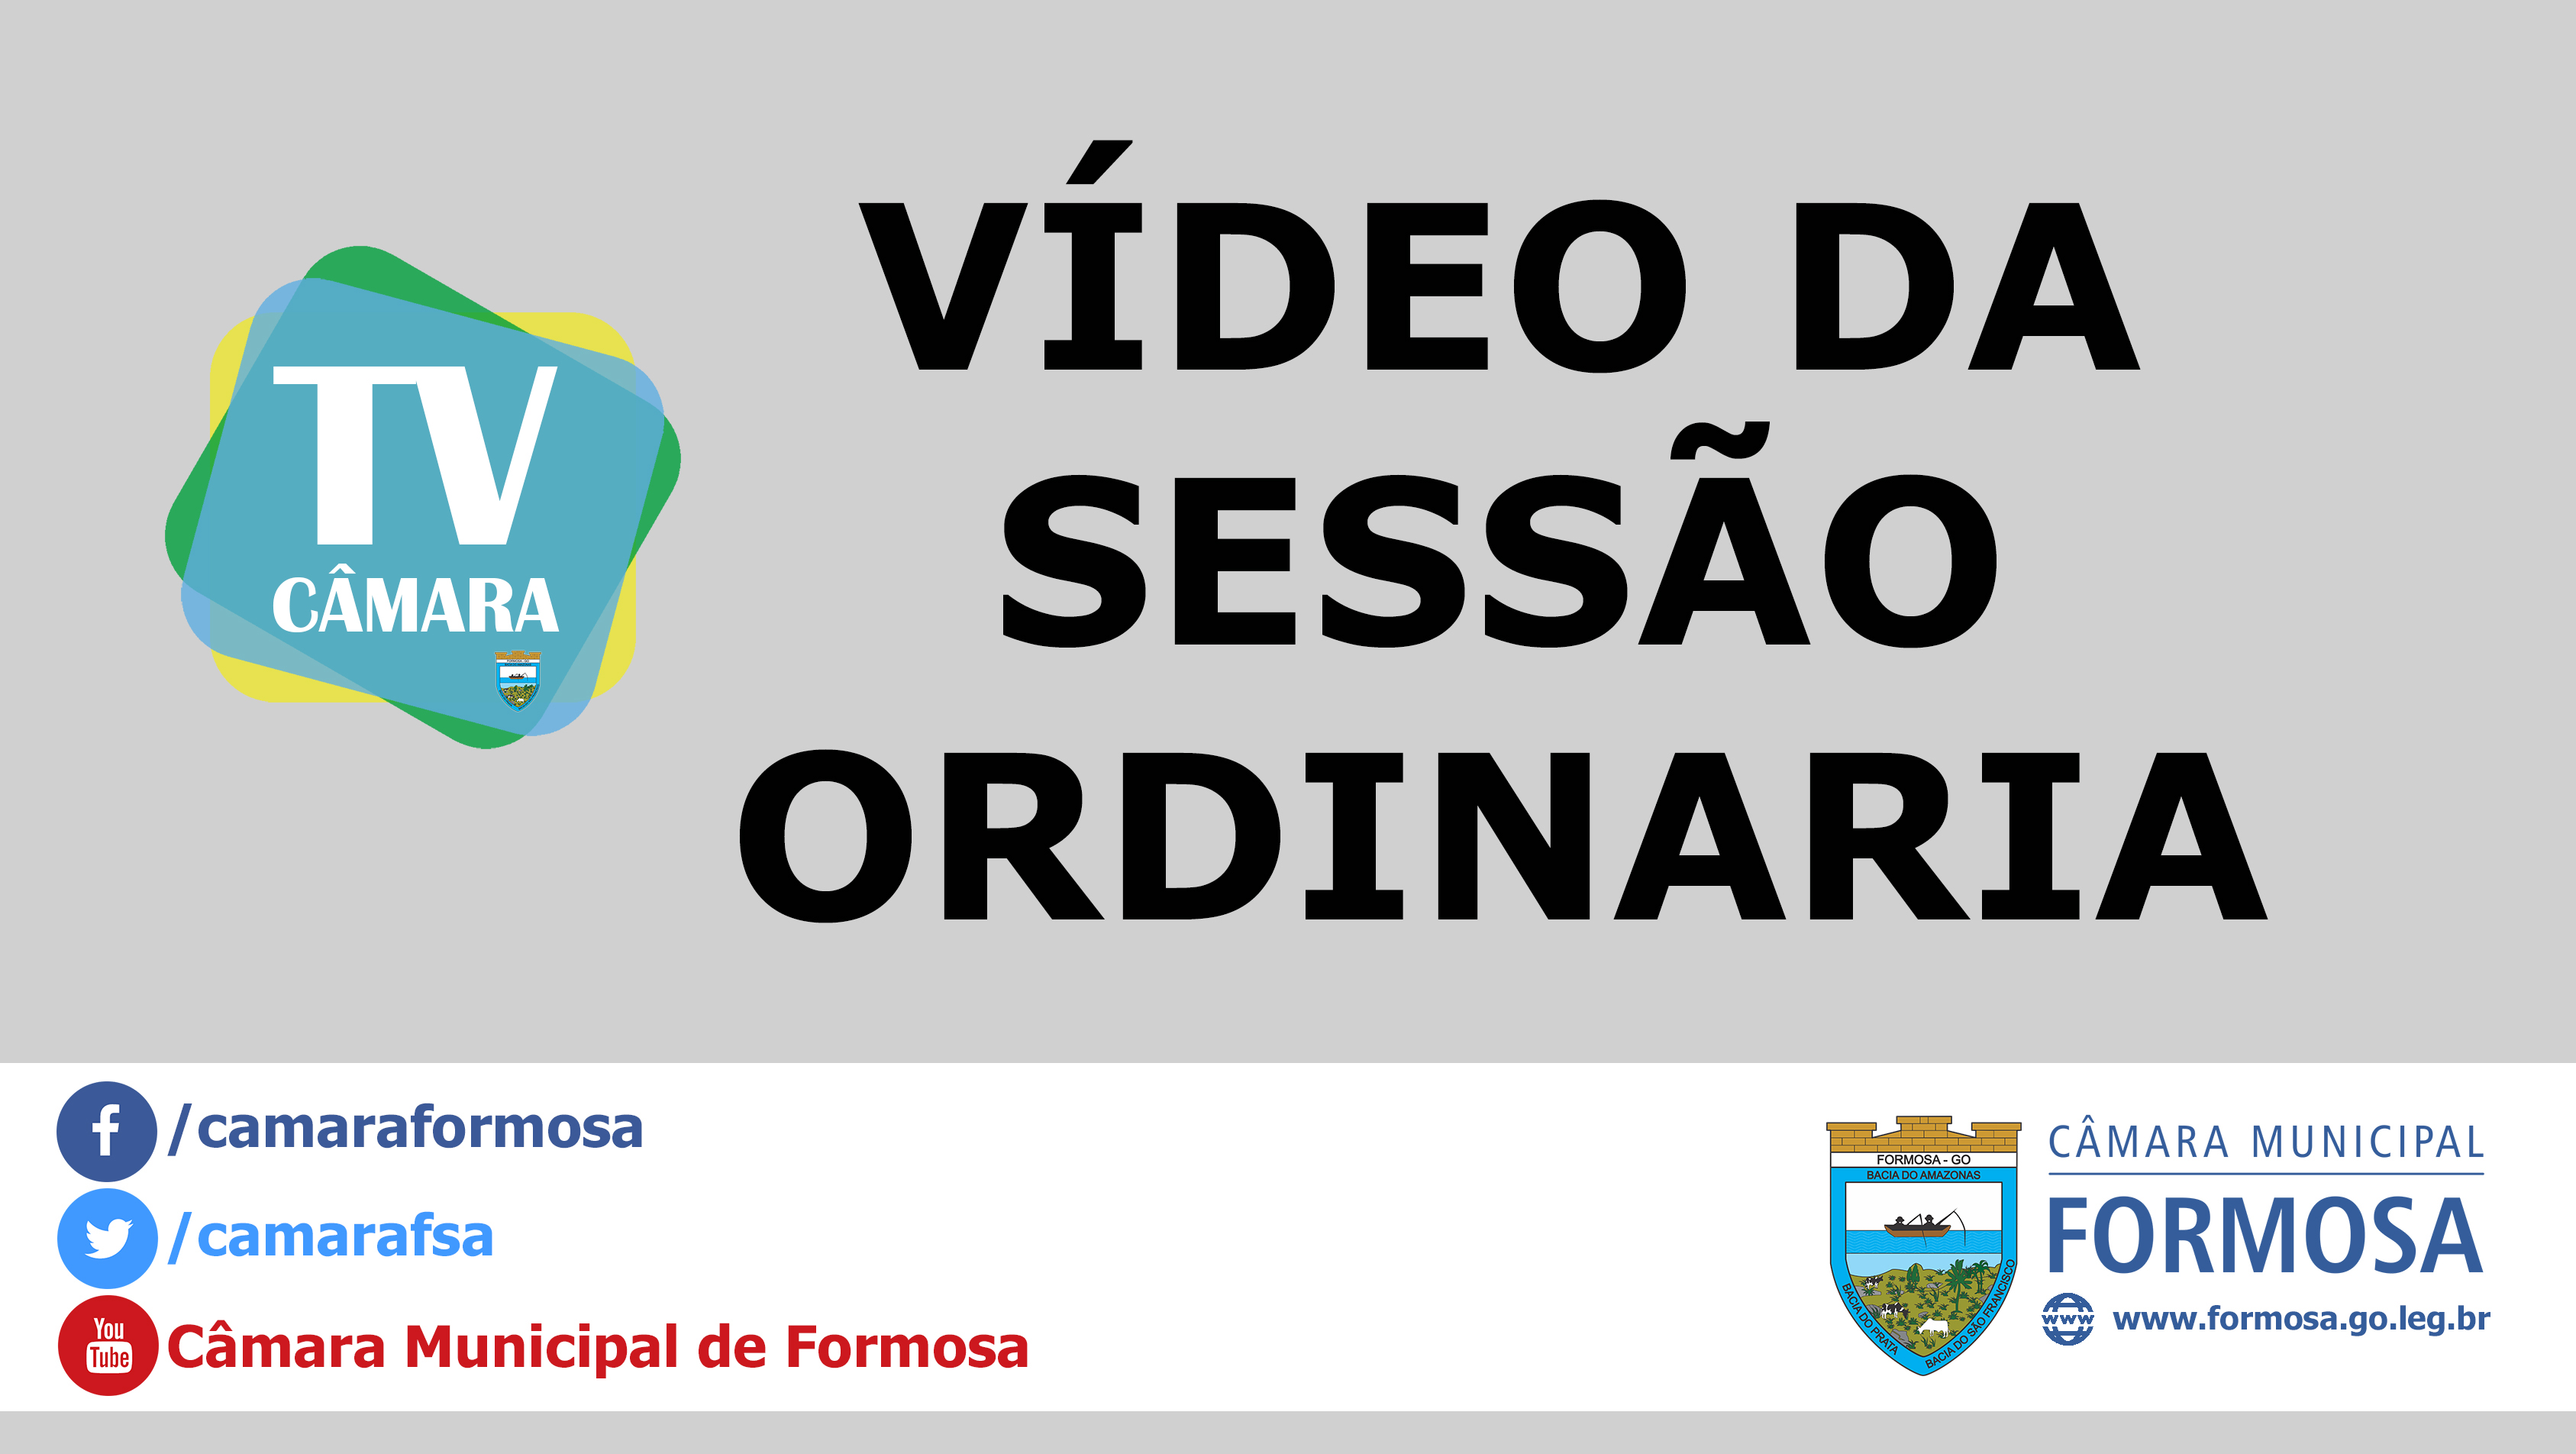 Vídeo da Sessão Ordinária do dia 03/10/18